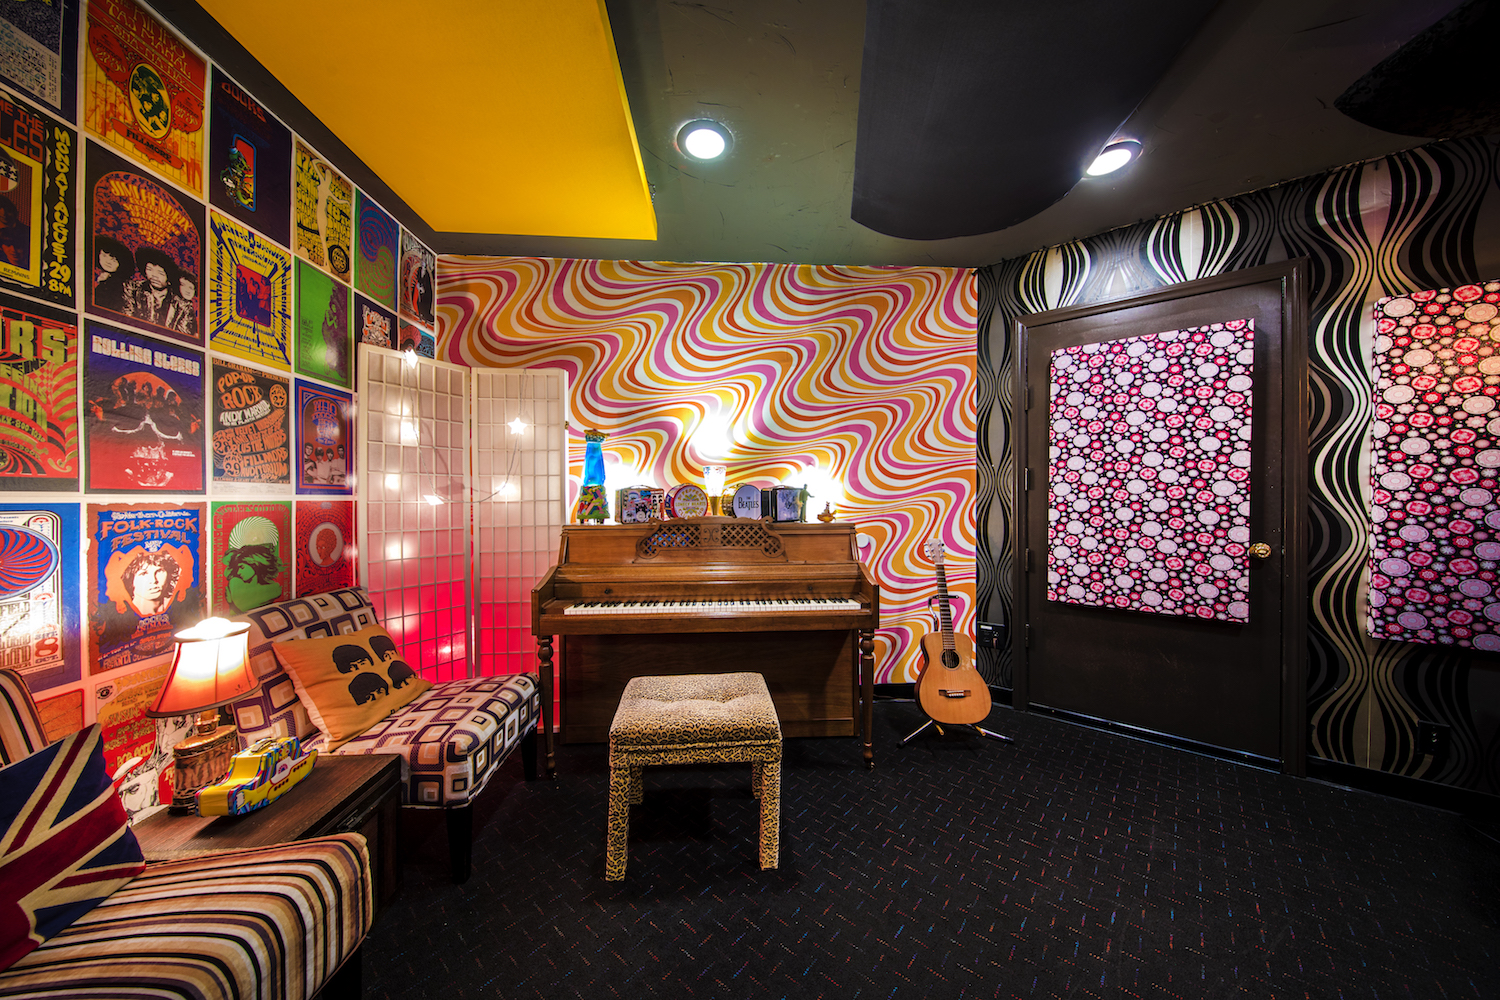 The Psychedelic Room - Free your mind in the Psychedelic Room, complete with retro wallpaper, groovy lava lamps and an unprecedented collection of Beatles lunch boxes.